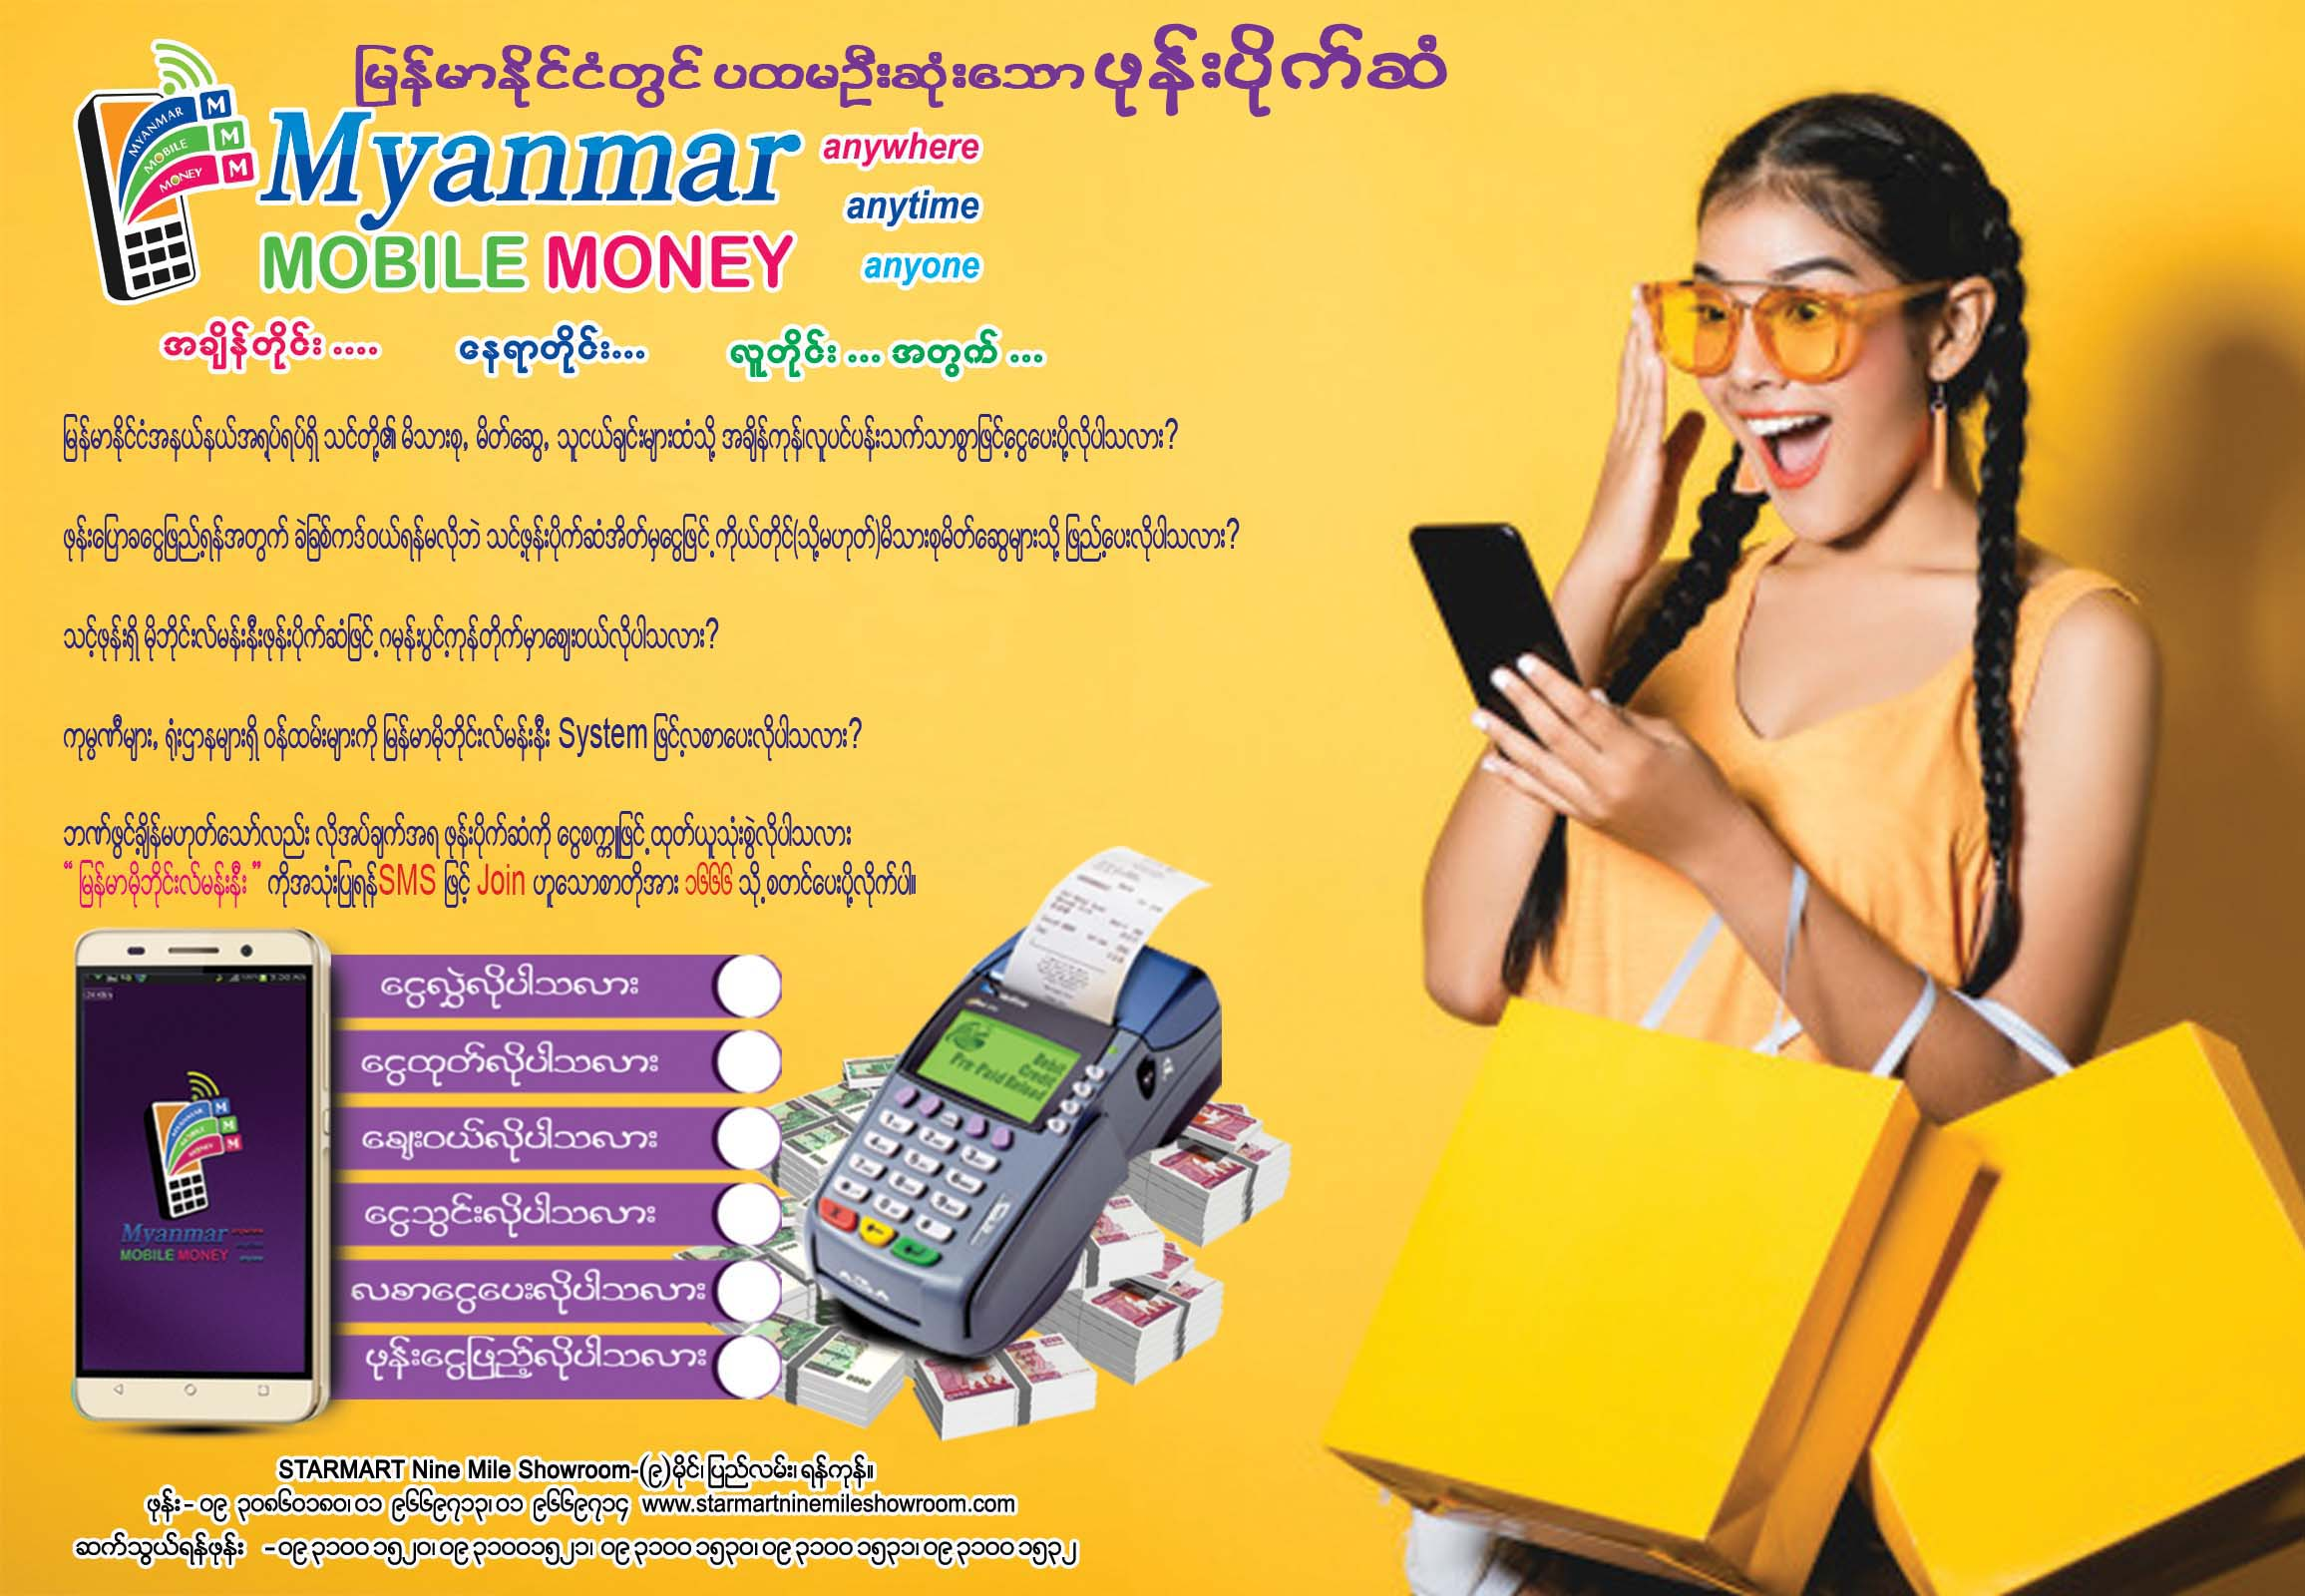 Myanmar Mobile Money